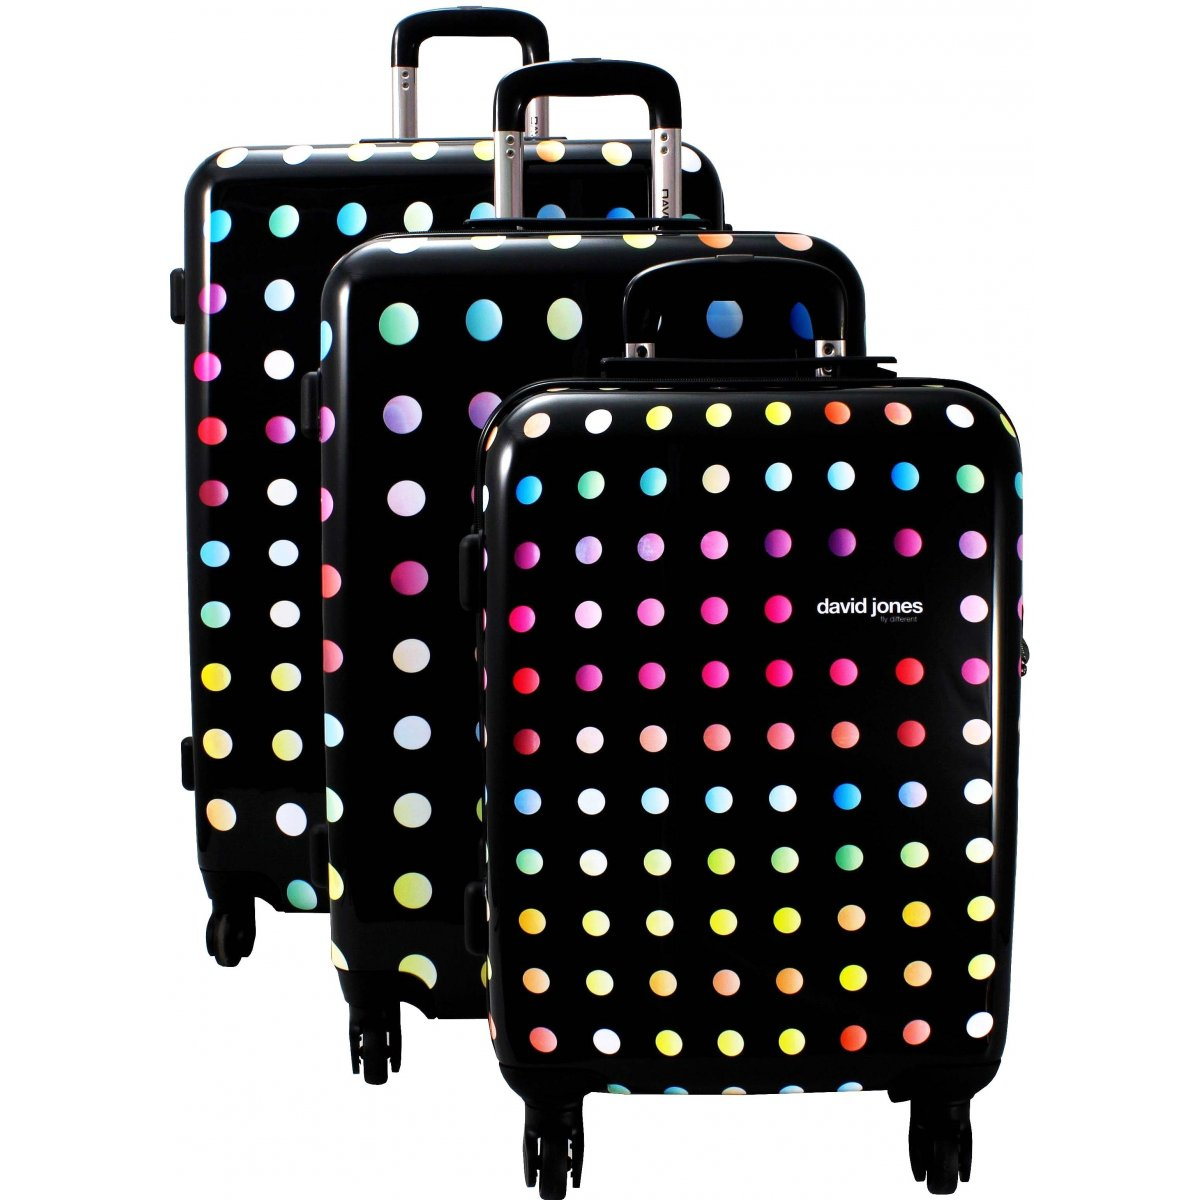 Lot 3 valises dont 1 cabine ryanair david jones ba20553 couleur principale little pois - Valise pas cher leclerc ...